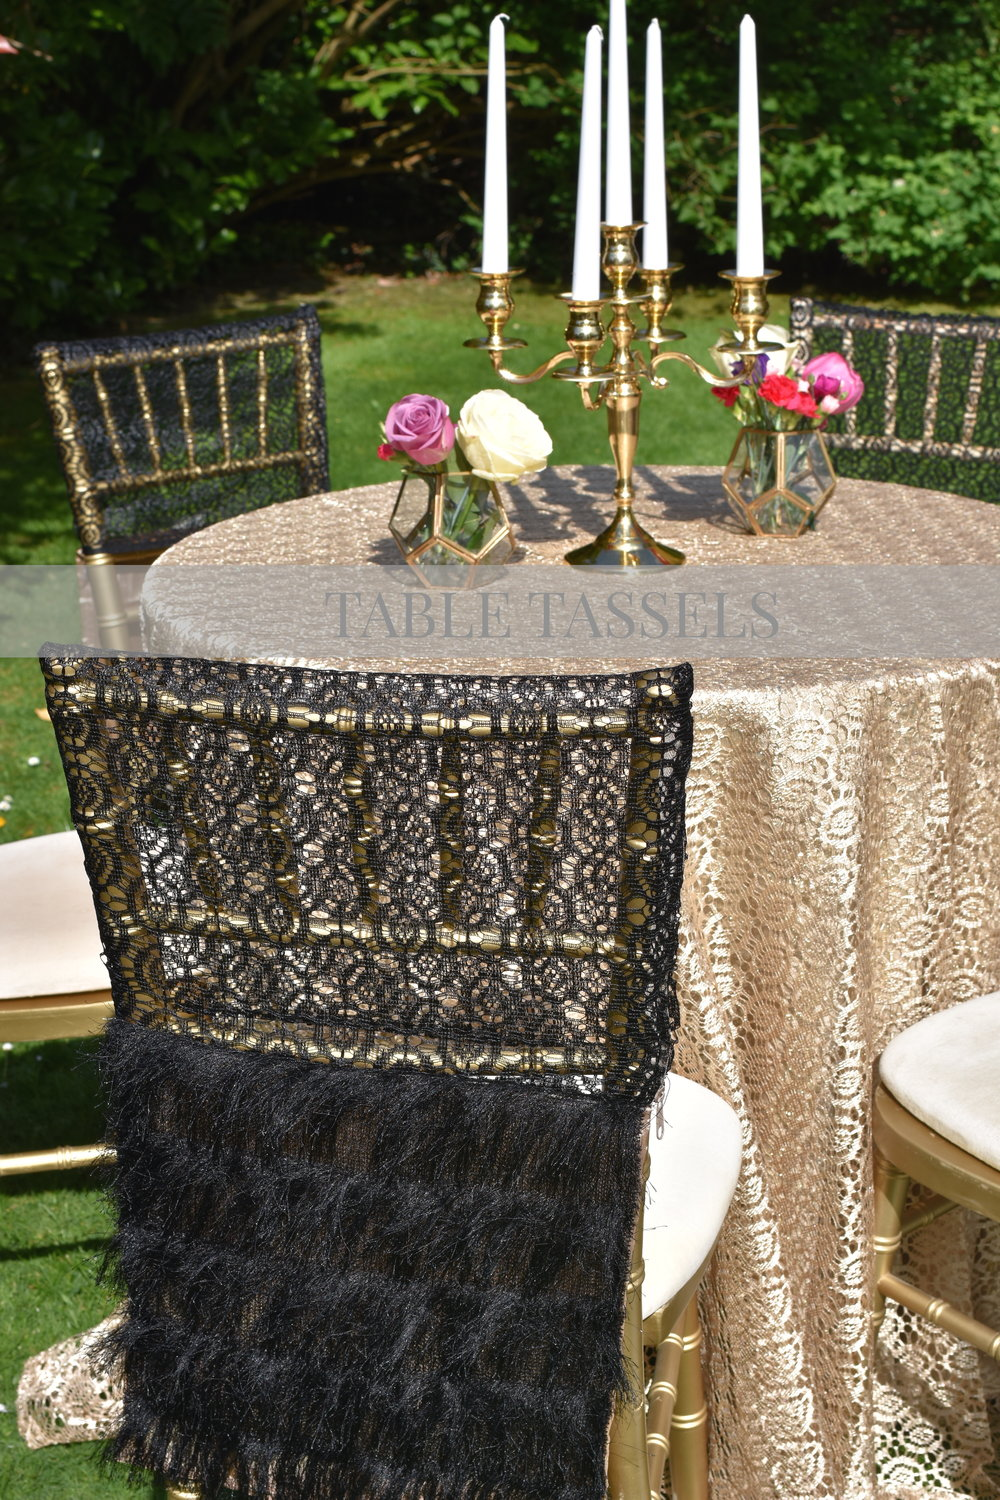 Great Gatsby Collection    Our Great Gatsby inspire collection hints glamour from every angle.   We indulge our clients with fine lace, feathers and pearls reflecting the epitome of luxury design.  Scroll through our feathery Black Gatsby & Pink Gatsby Chair Covers for your '20s inspired events, and add that elegant touch with only a few tables & chairs!